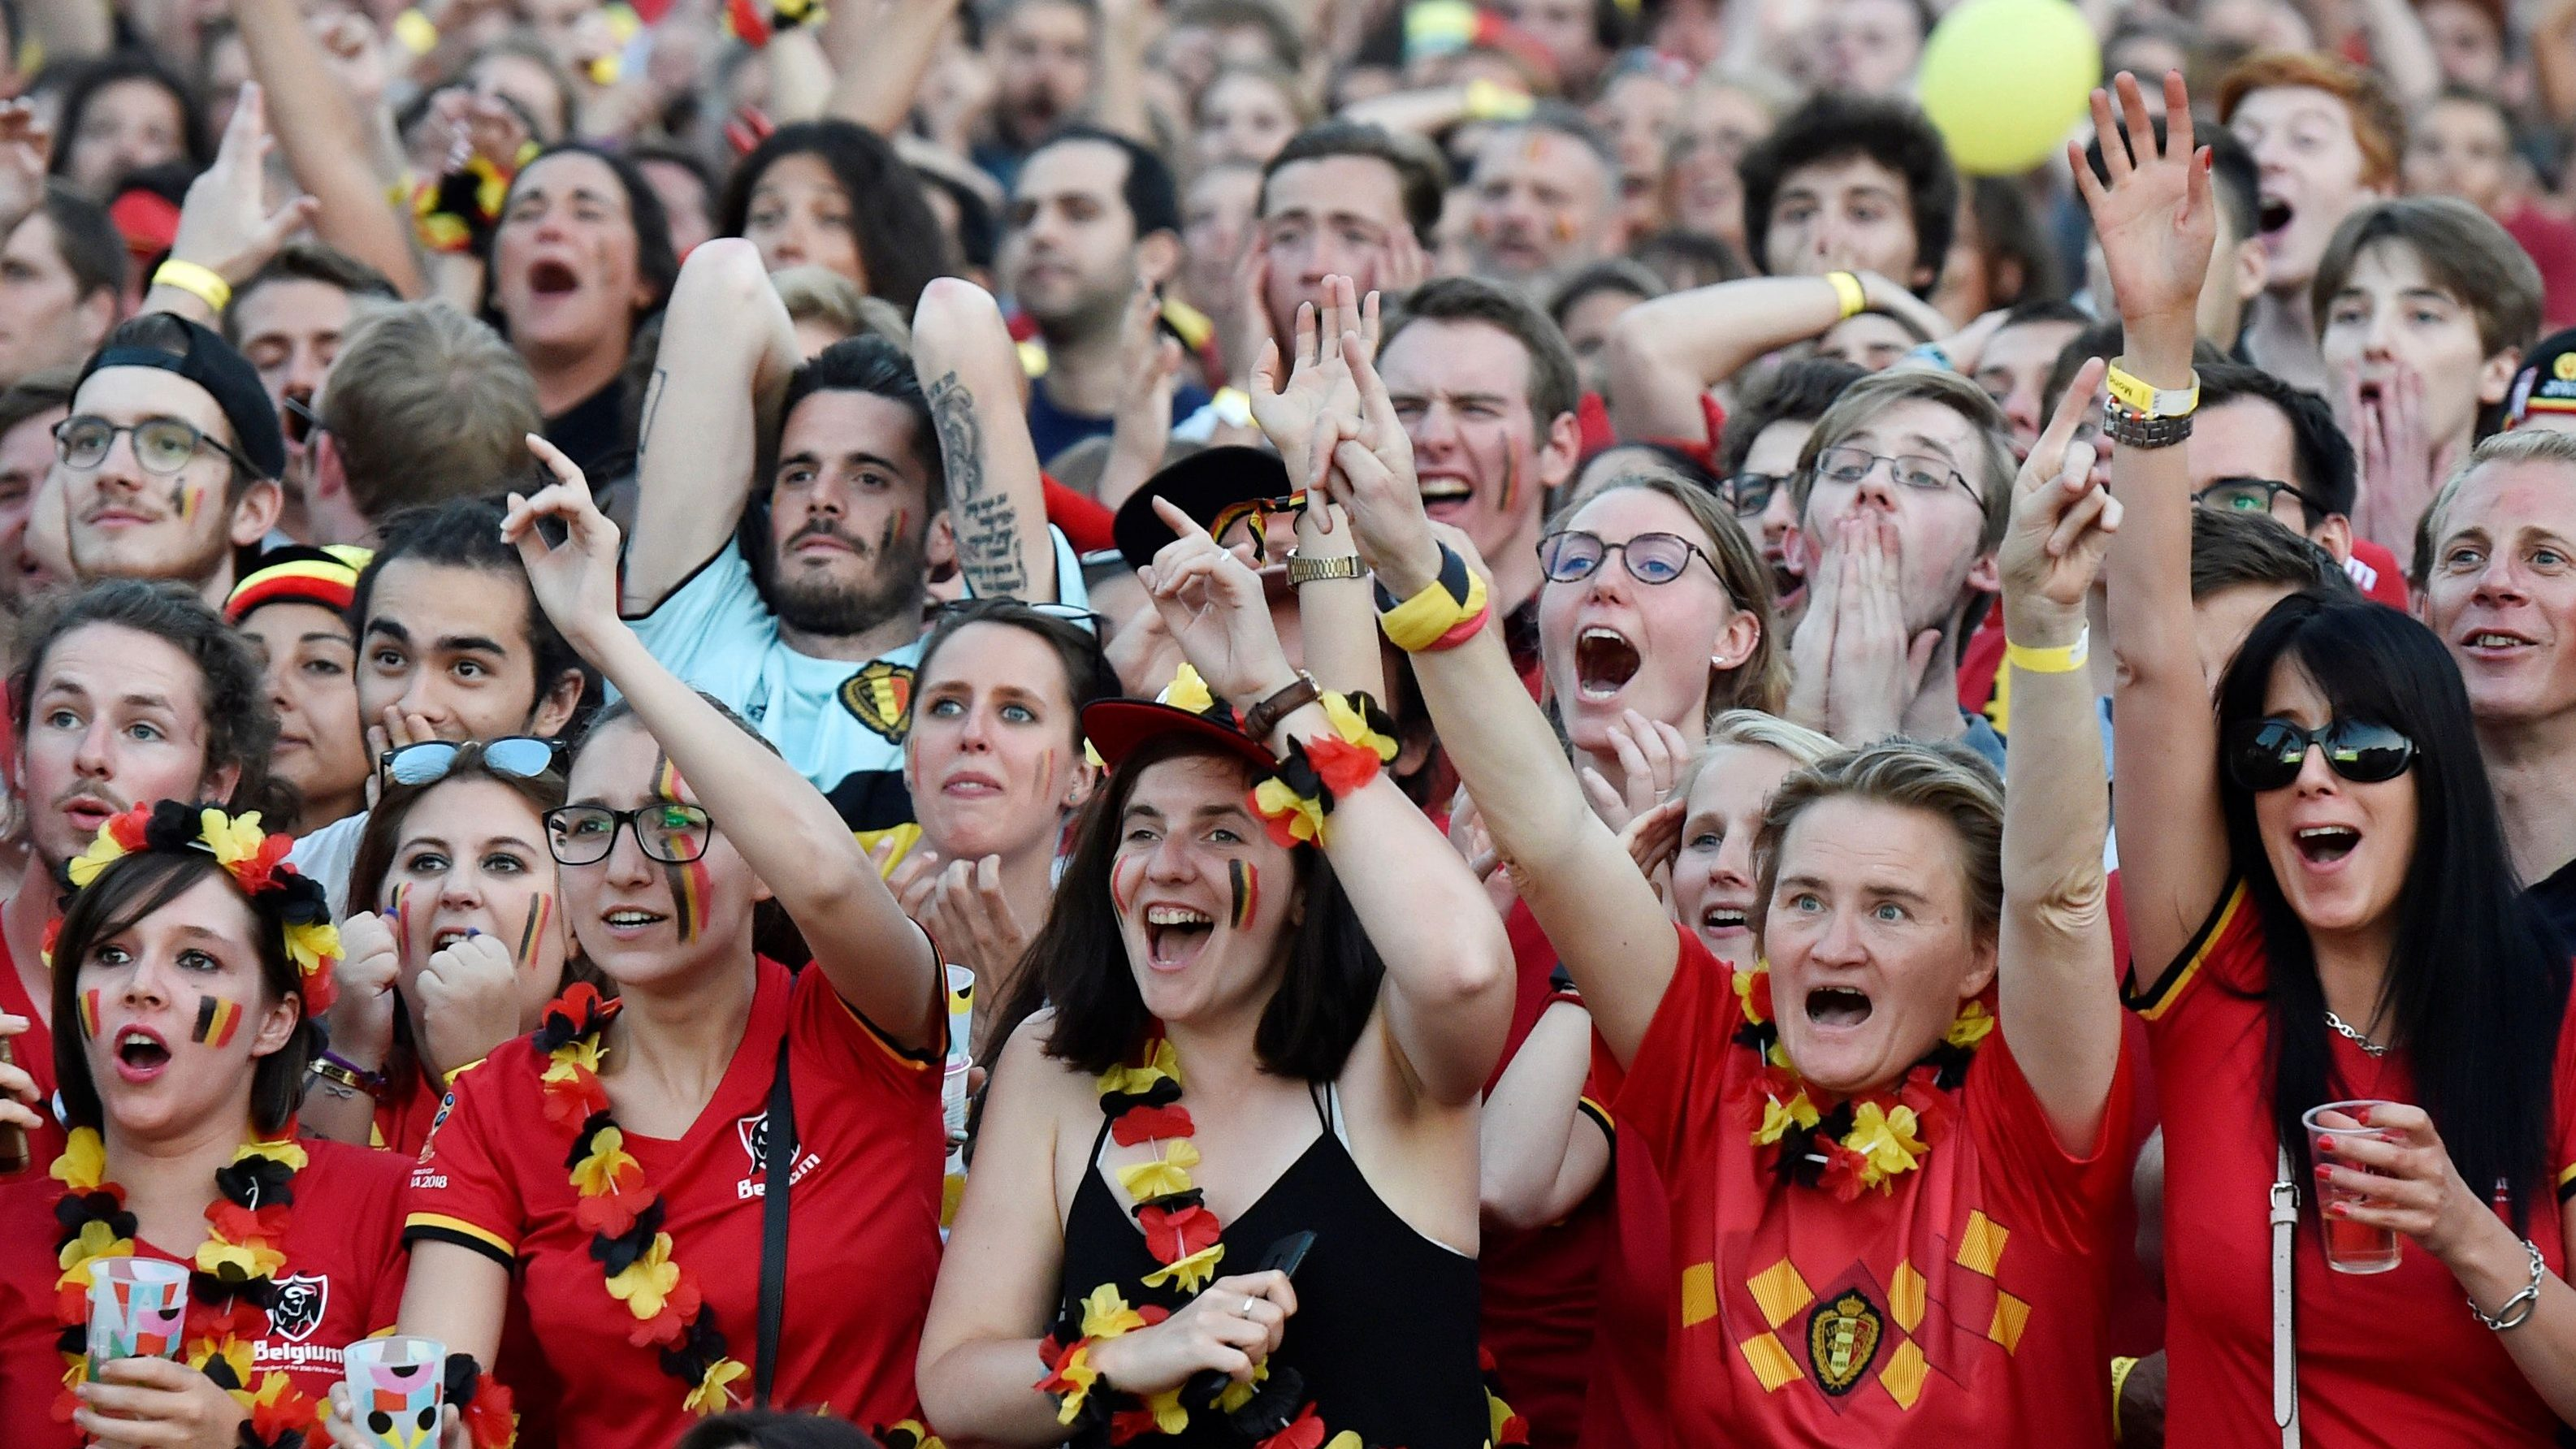 Belgian fans react as they watch the broadcast of the World Cup Group G soccer match between Belgium and England in Brussels, Belgium June 28, 2018.